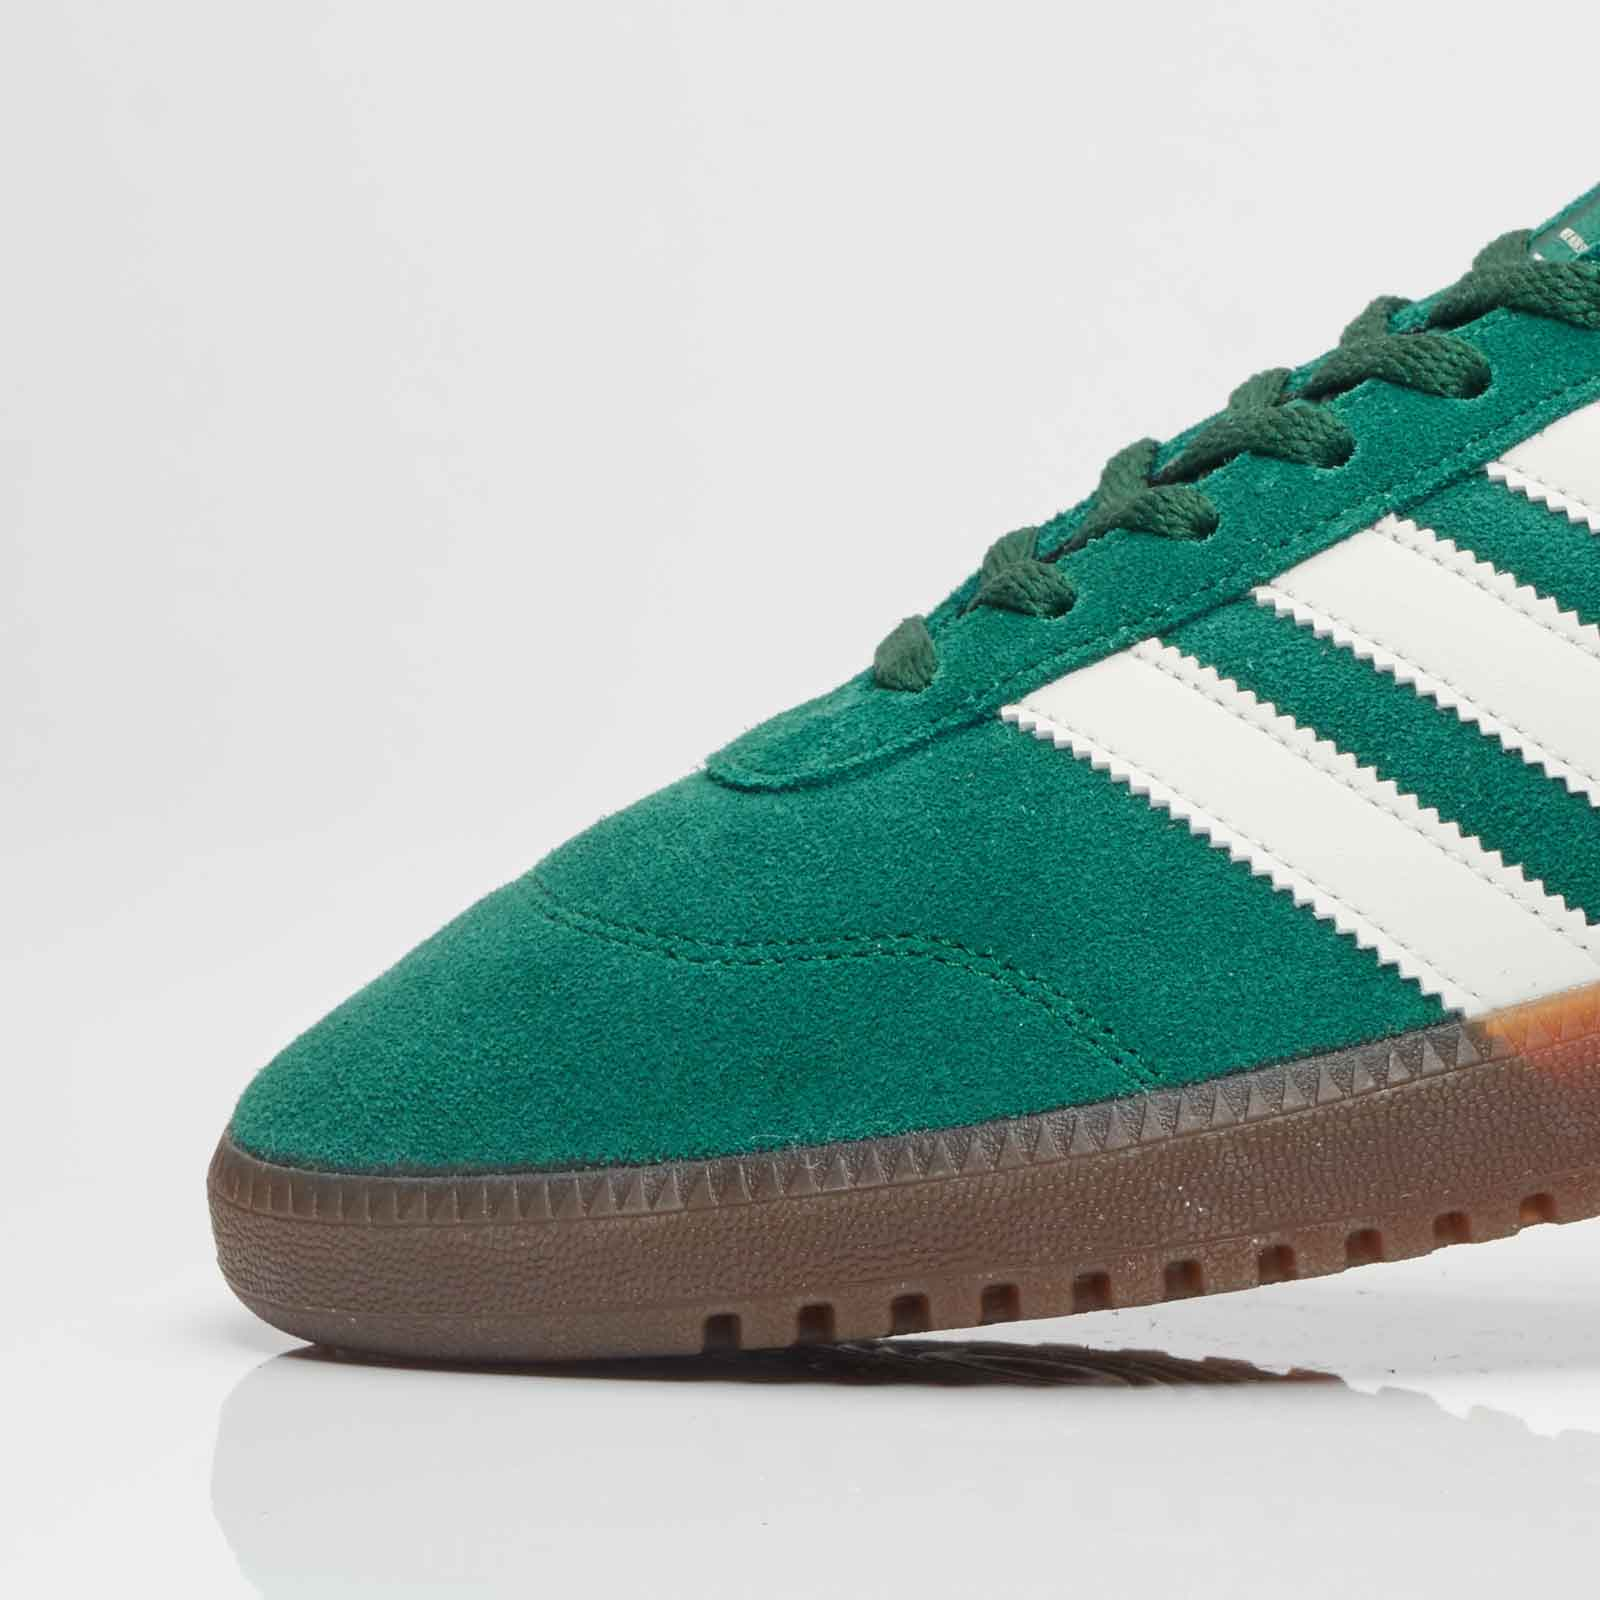 the best attitude 49b66 0e13e adidas Originals Spezial Intack - 6. Close